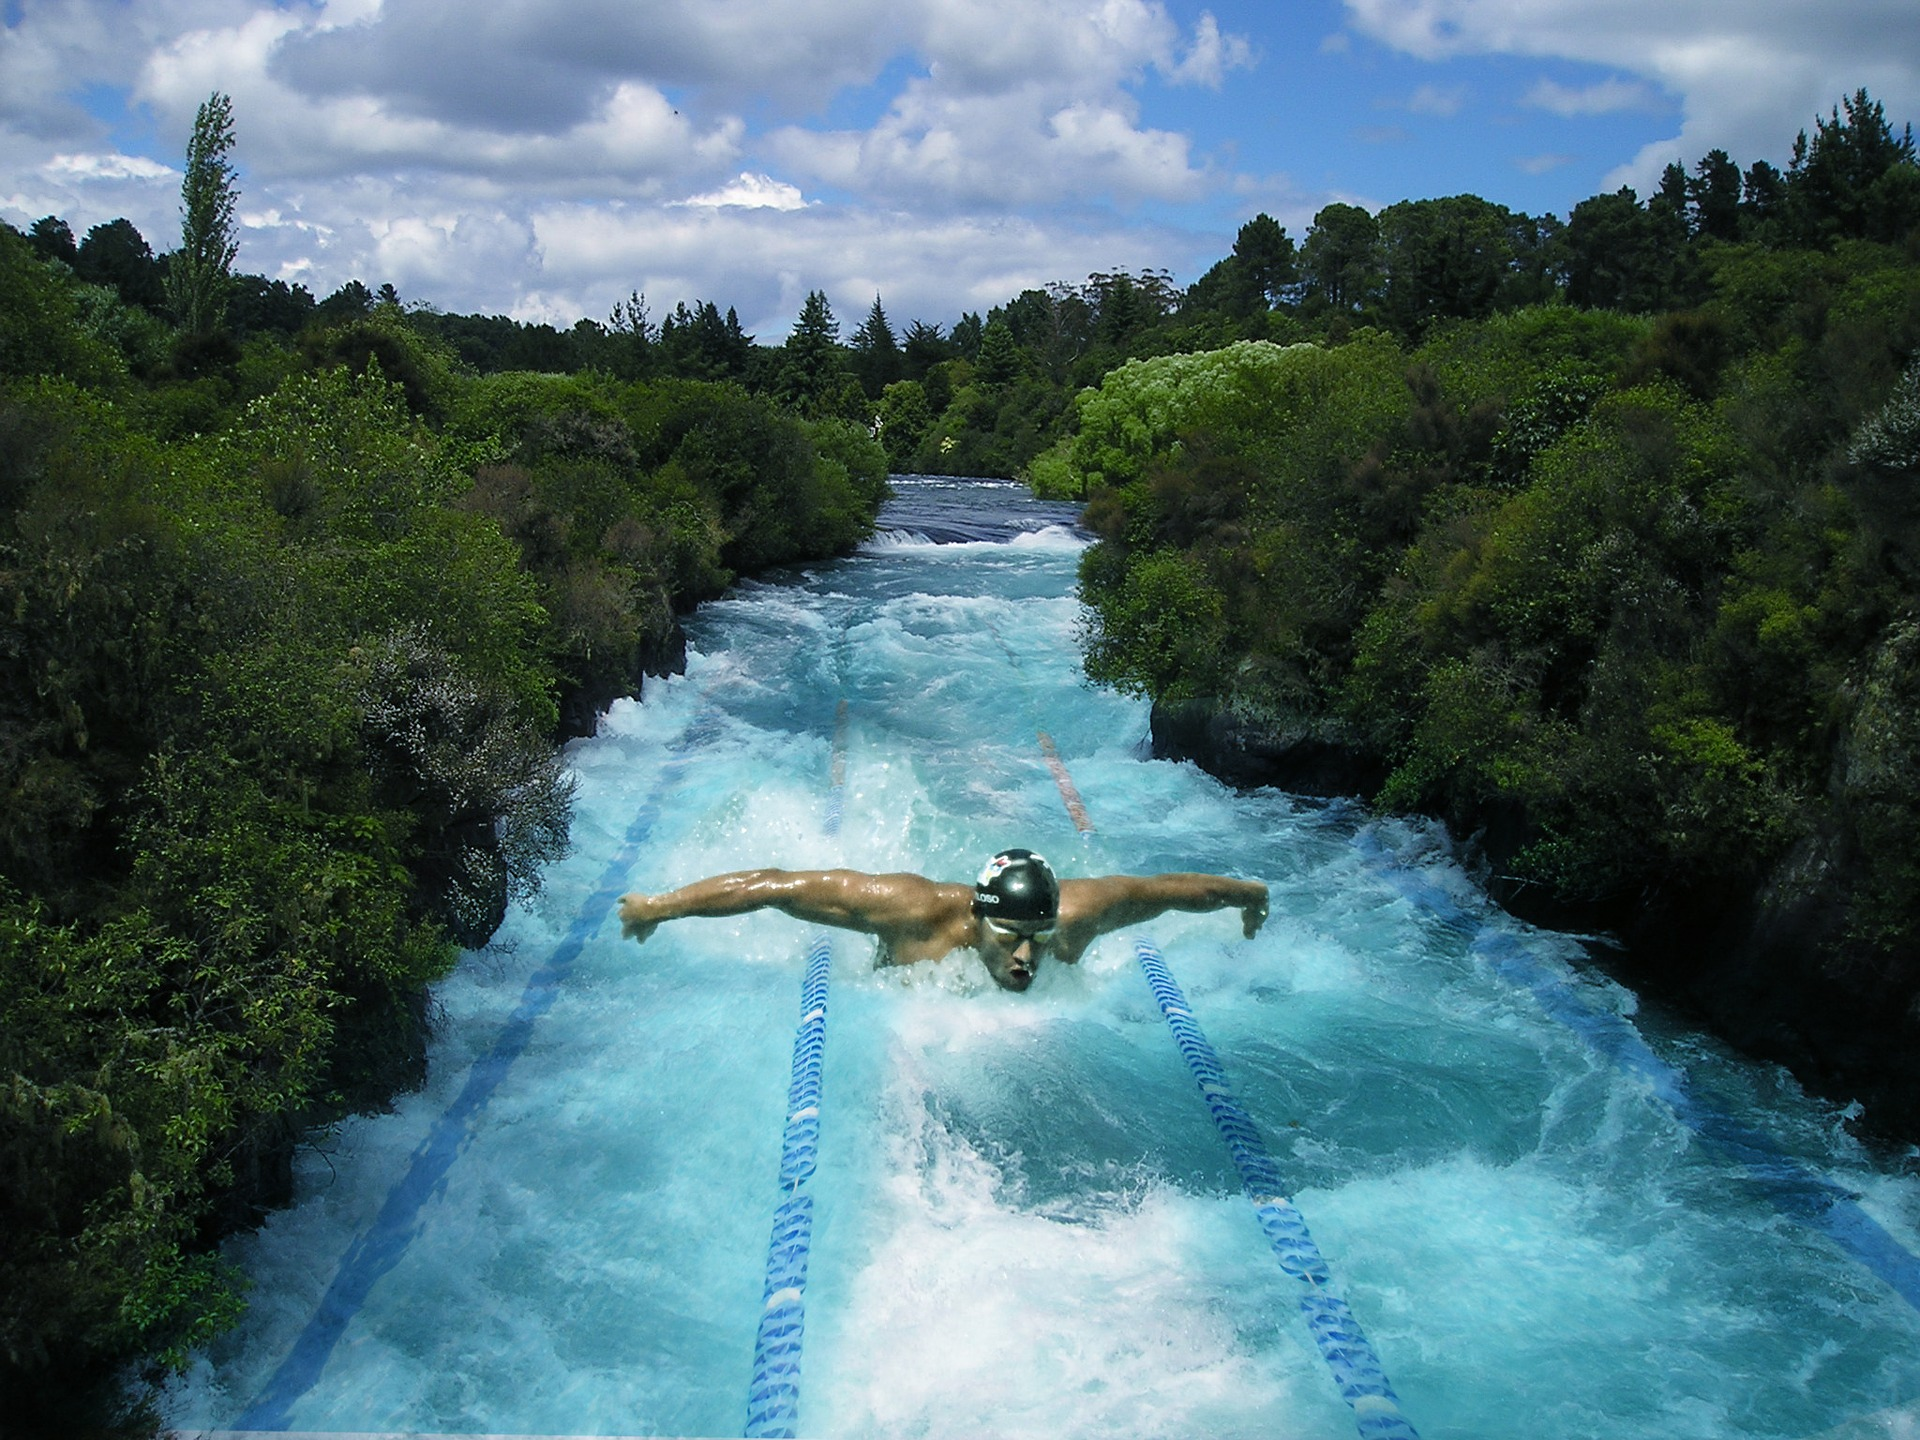 image of cometitive swimmer in pool superimoposed in valley of trees